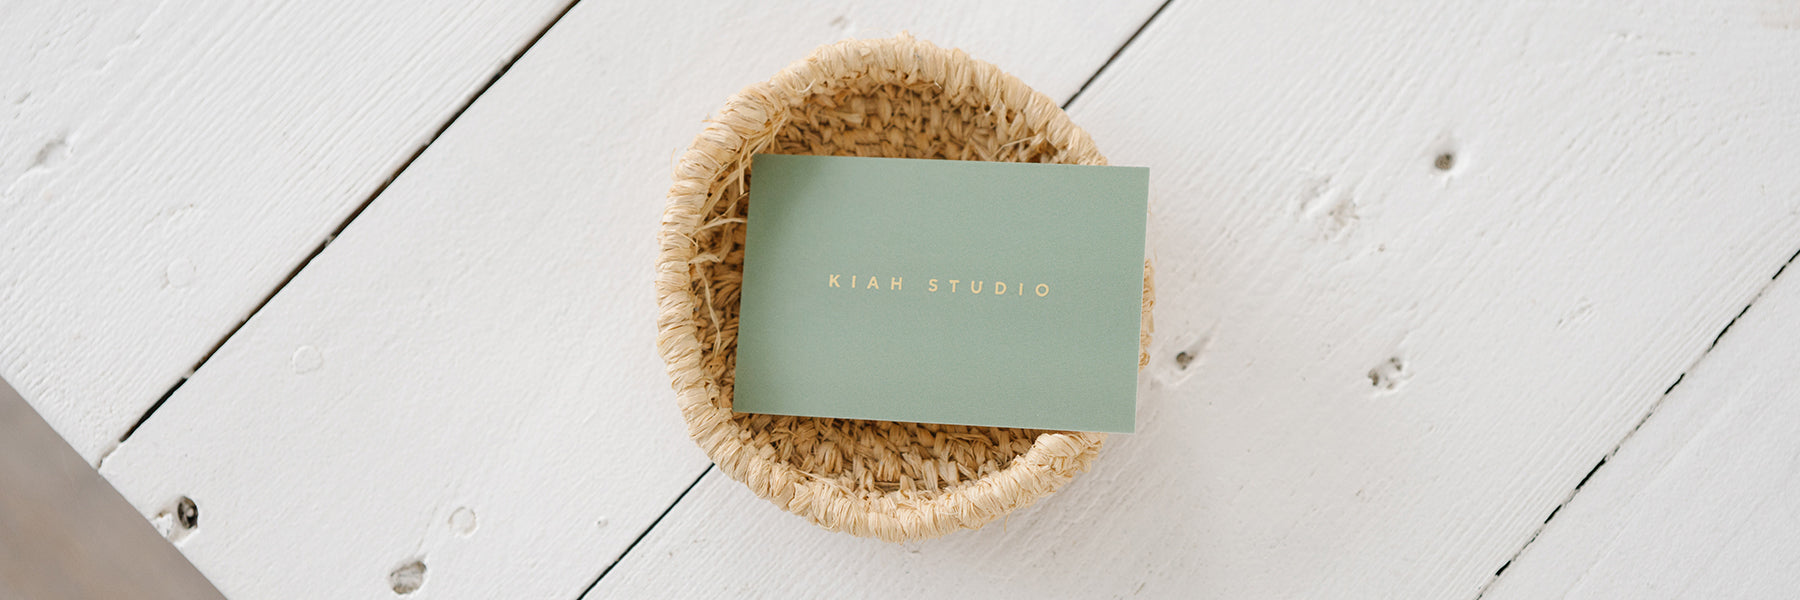 Contact details for Kiah Studio